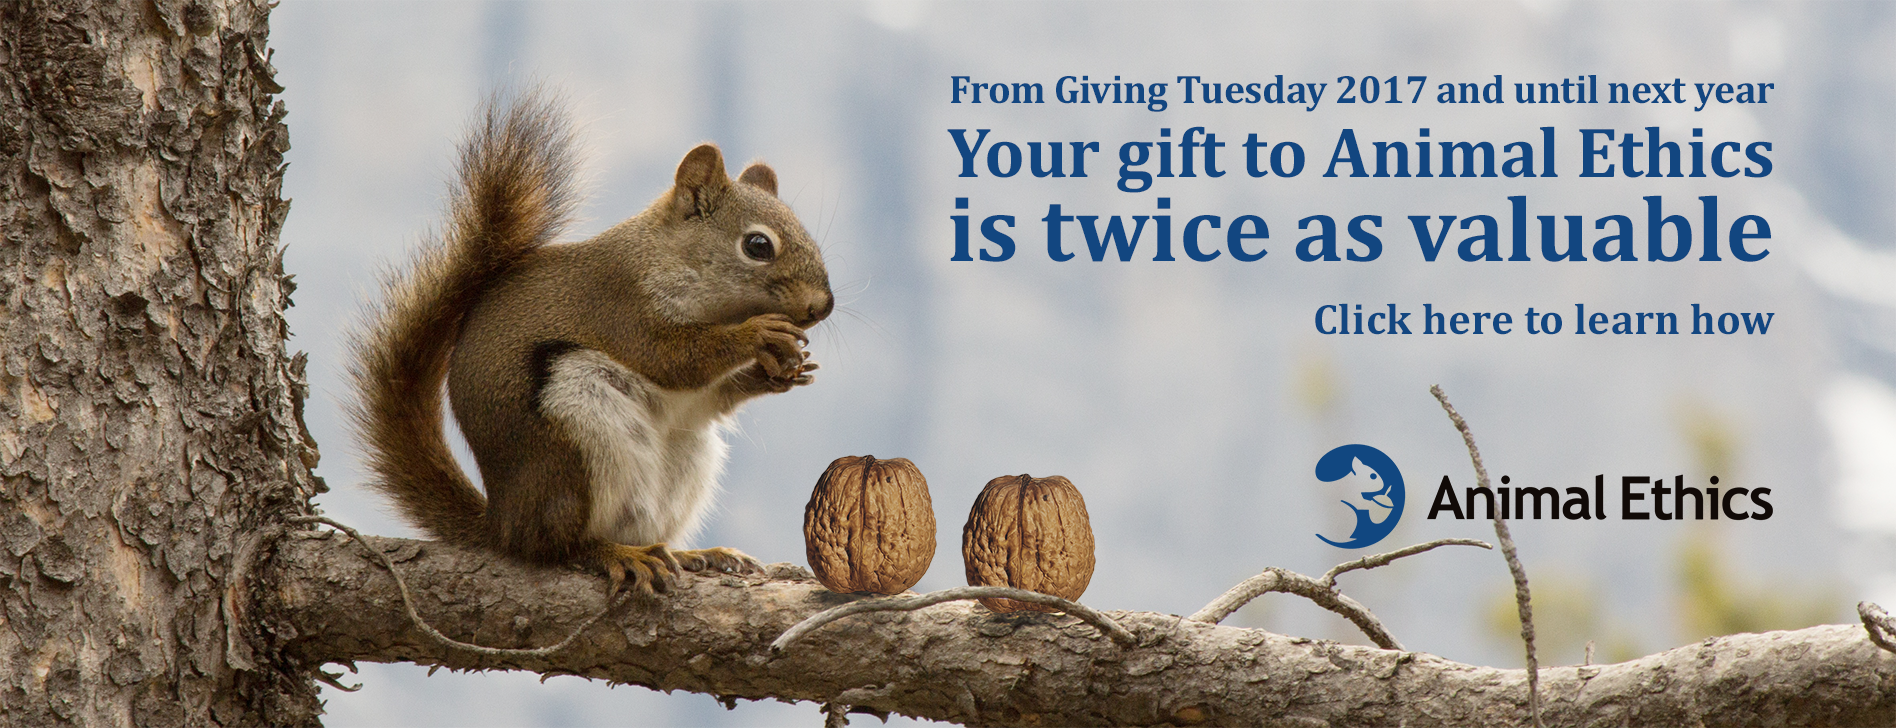 http://www.animal-ethics.org/wp-content/uploads/givingtuesday2017.png